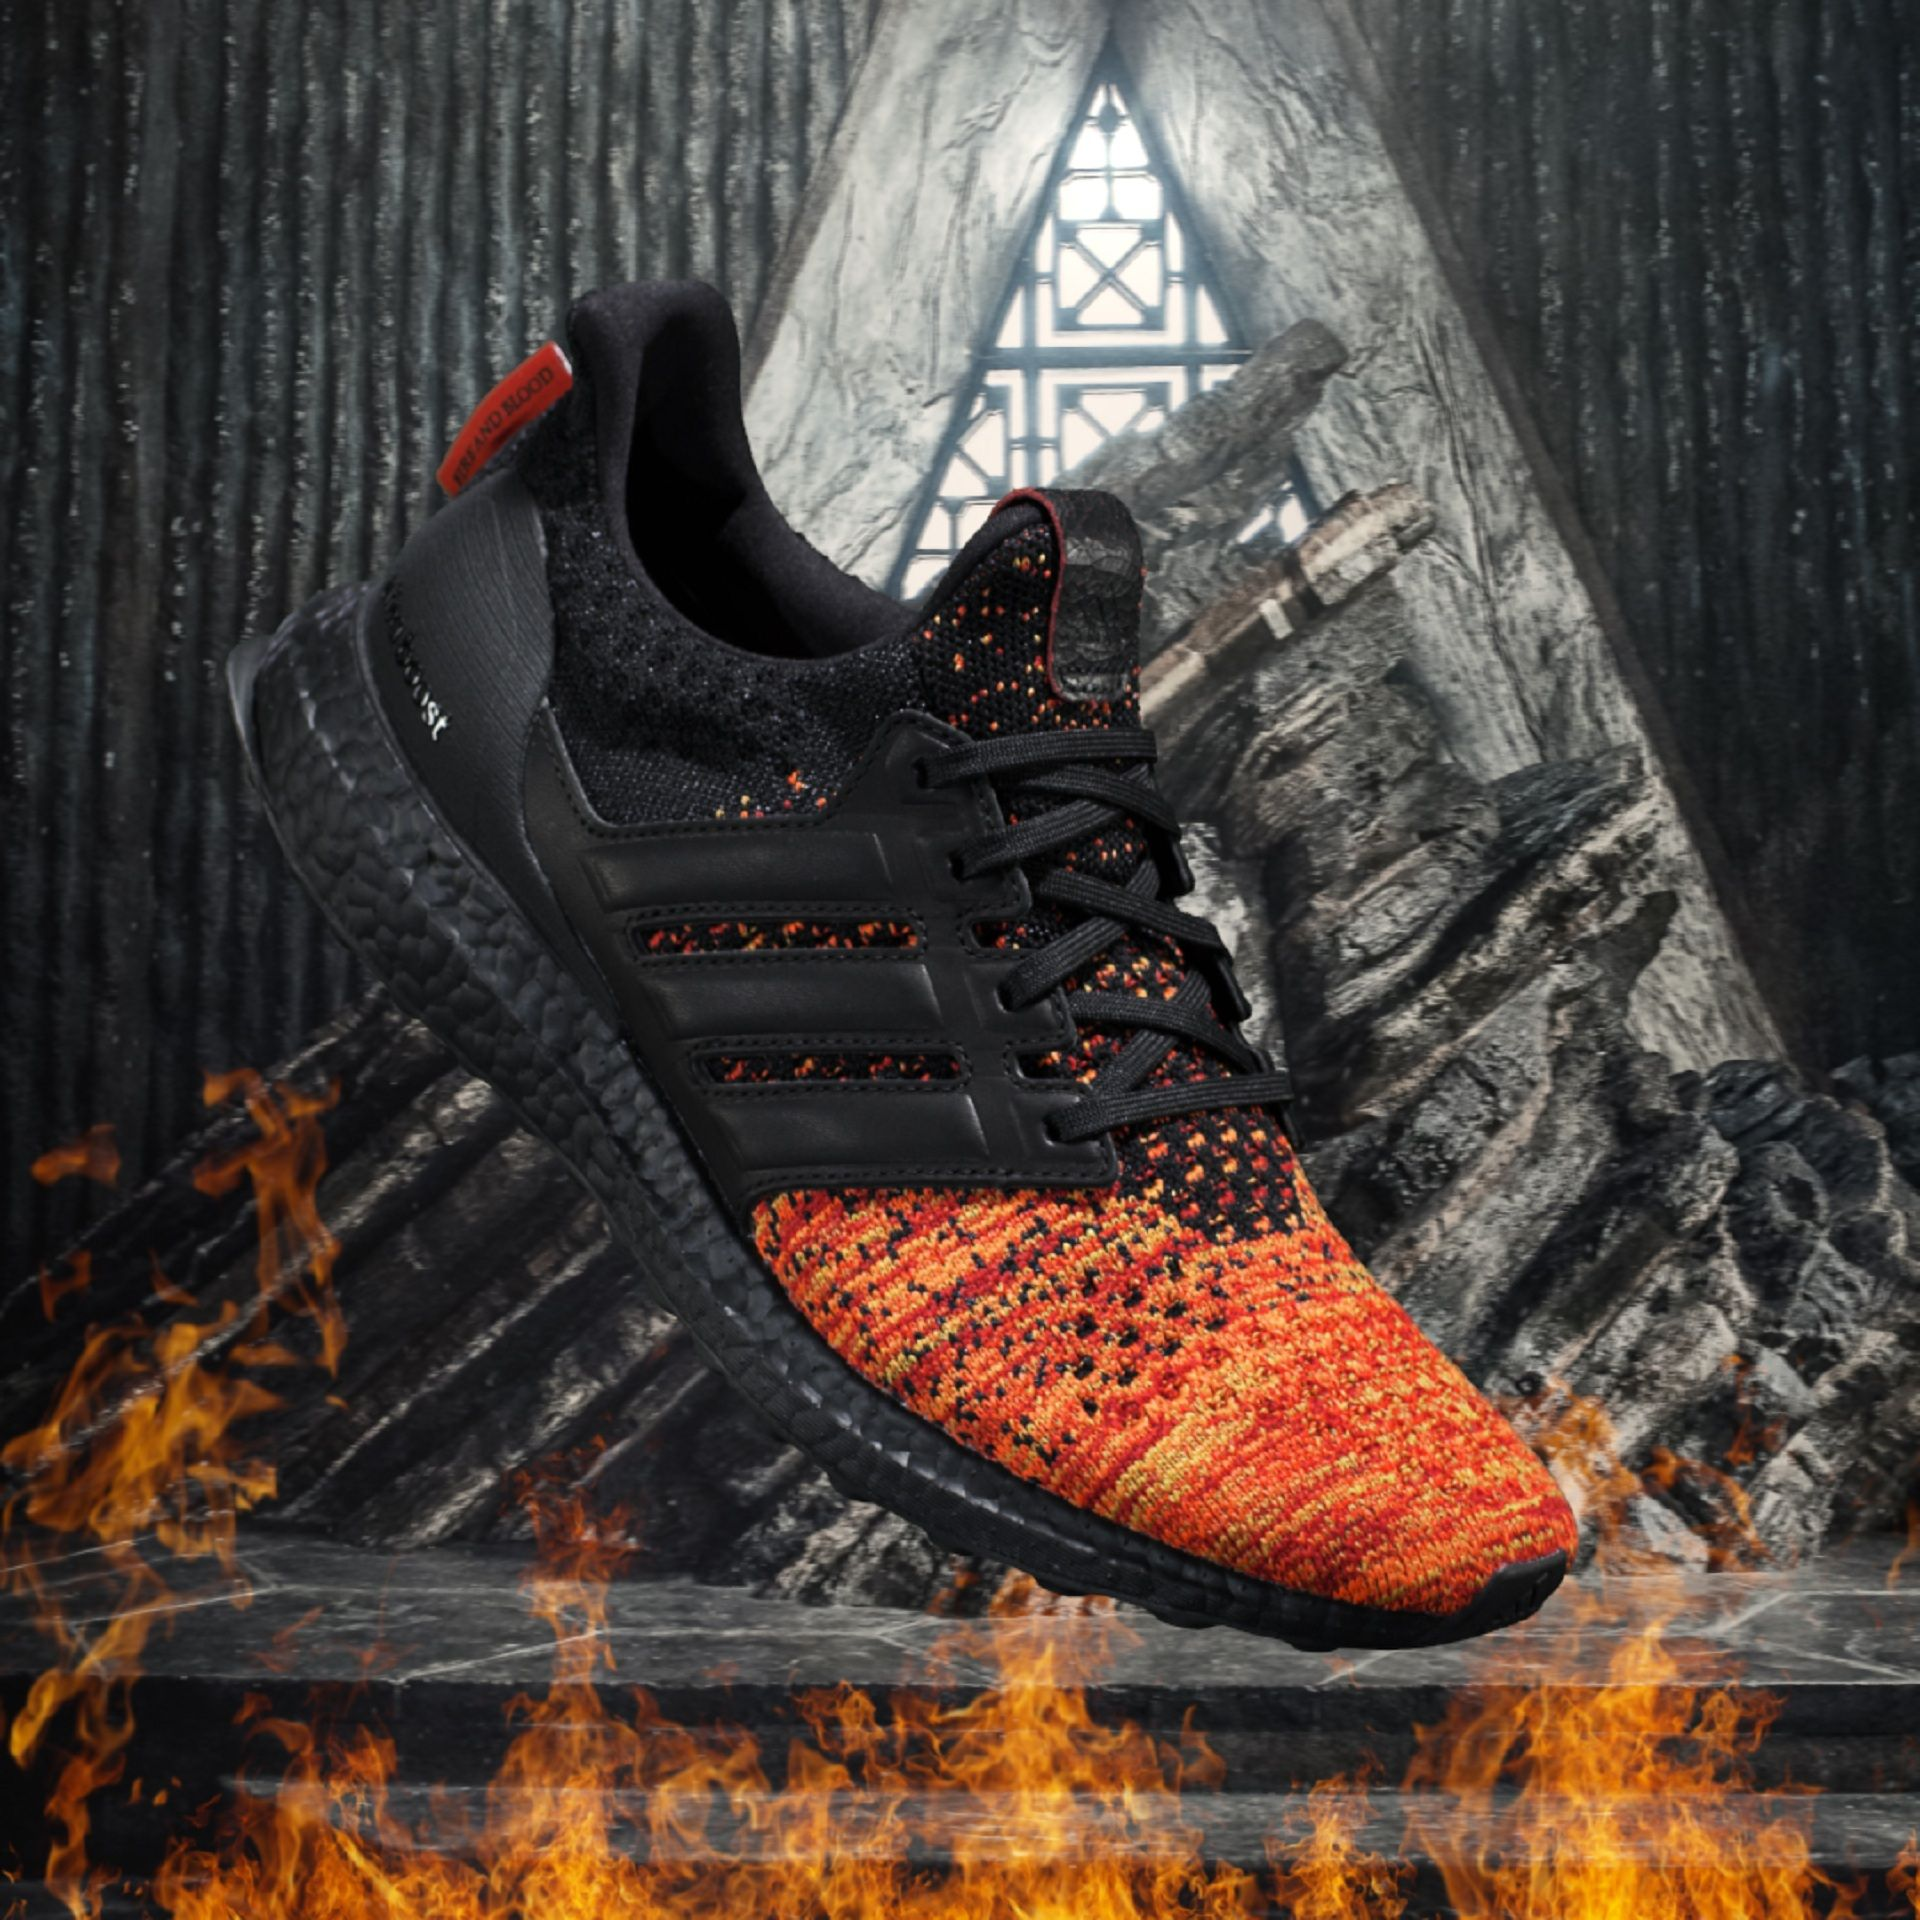 The Adidas x Game of Thrones Collection Finally Makes Its Debut